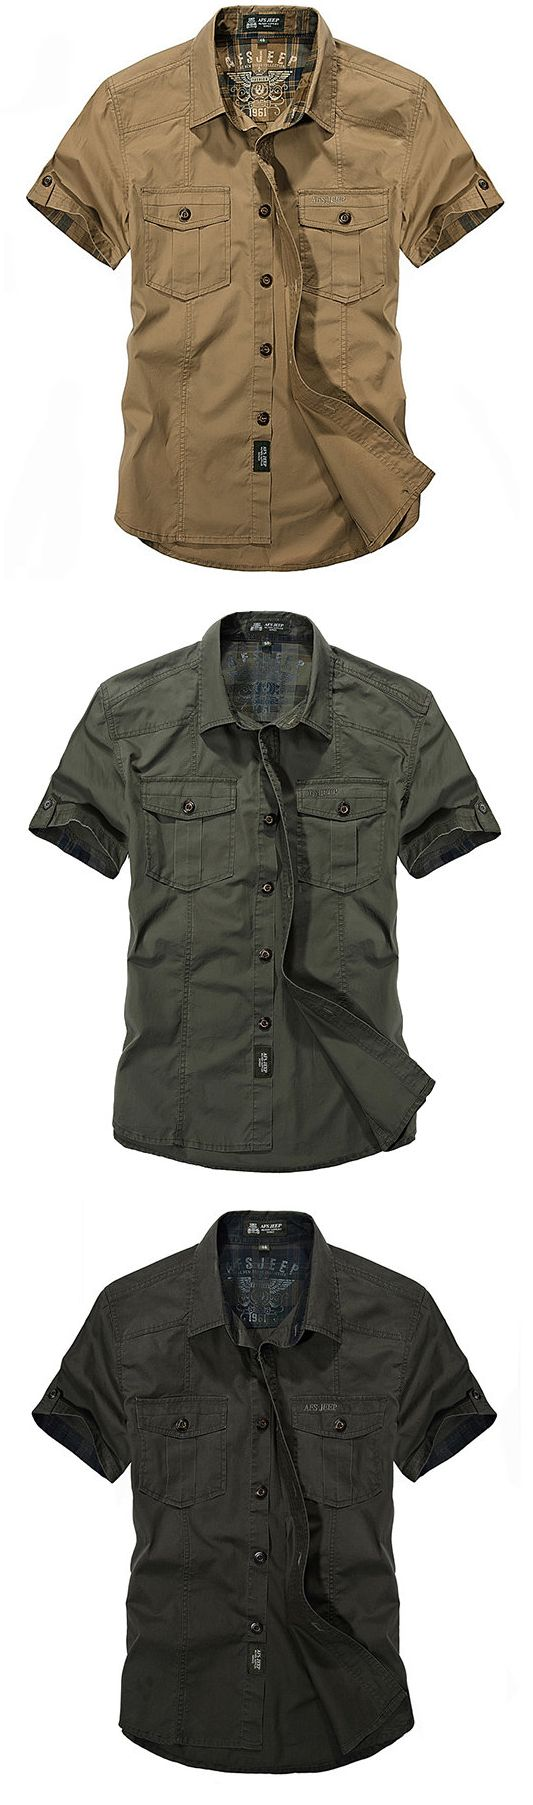 US$28.02 AFSJEEP Outdoor Sport Cotton Breathable Multi Pockets Cargo Short Sleeve Dress Shirts for Men